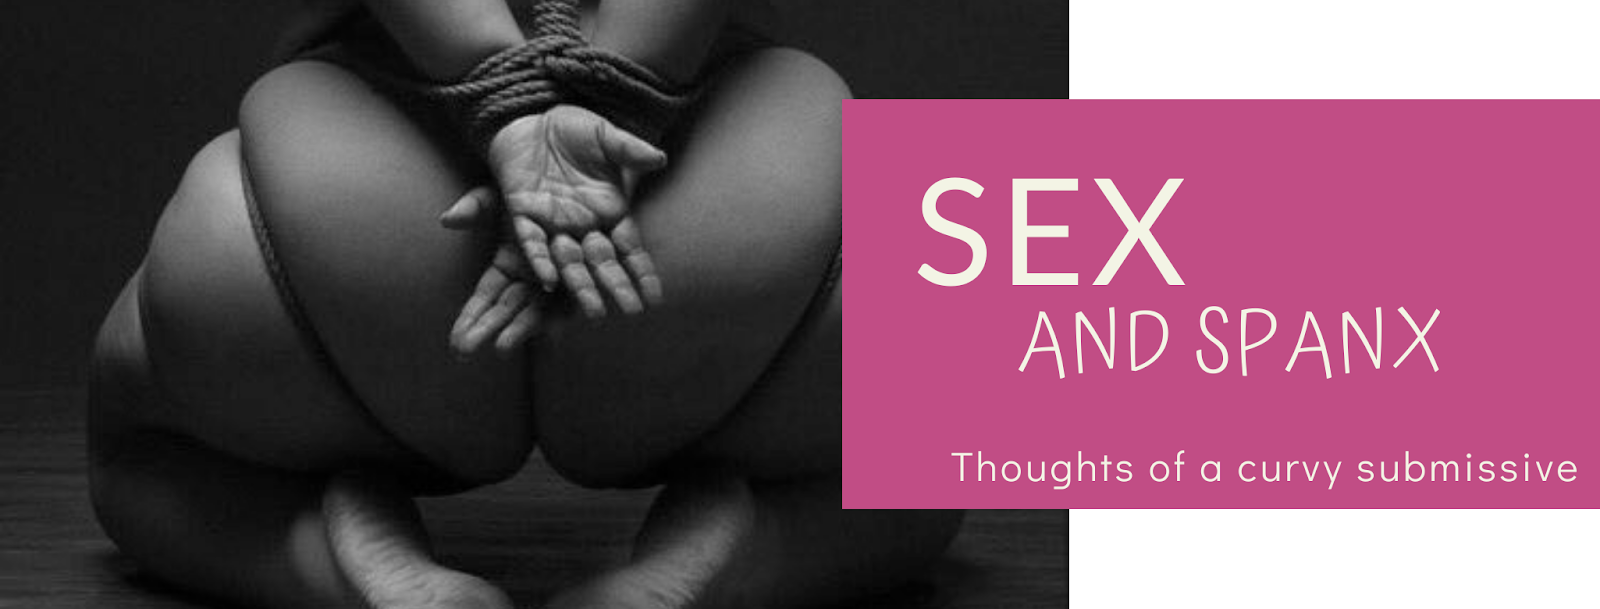 Sex and Spanx